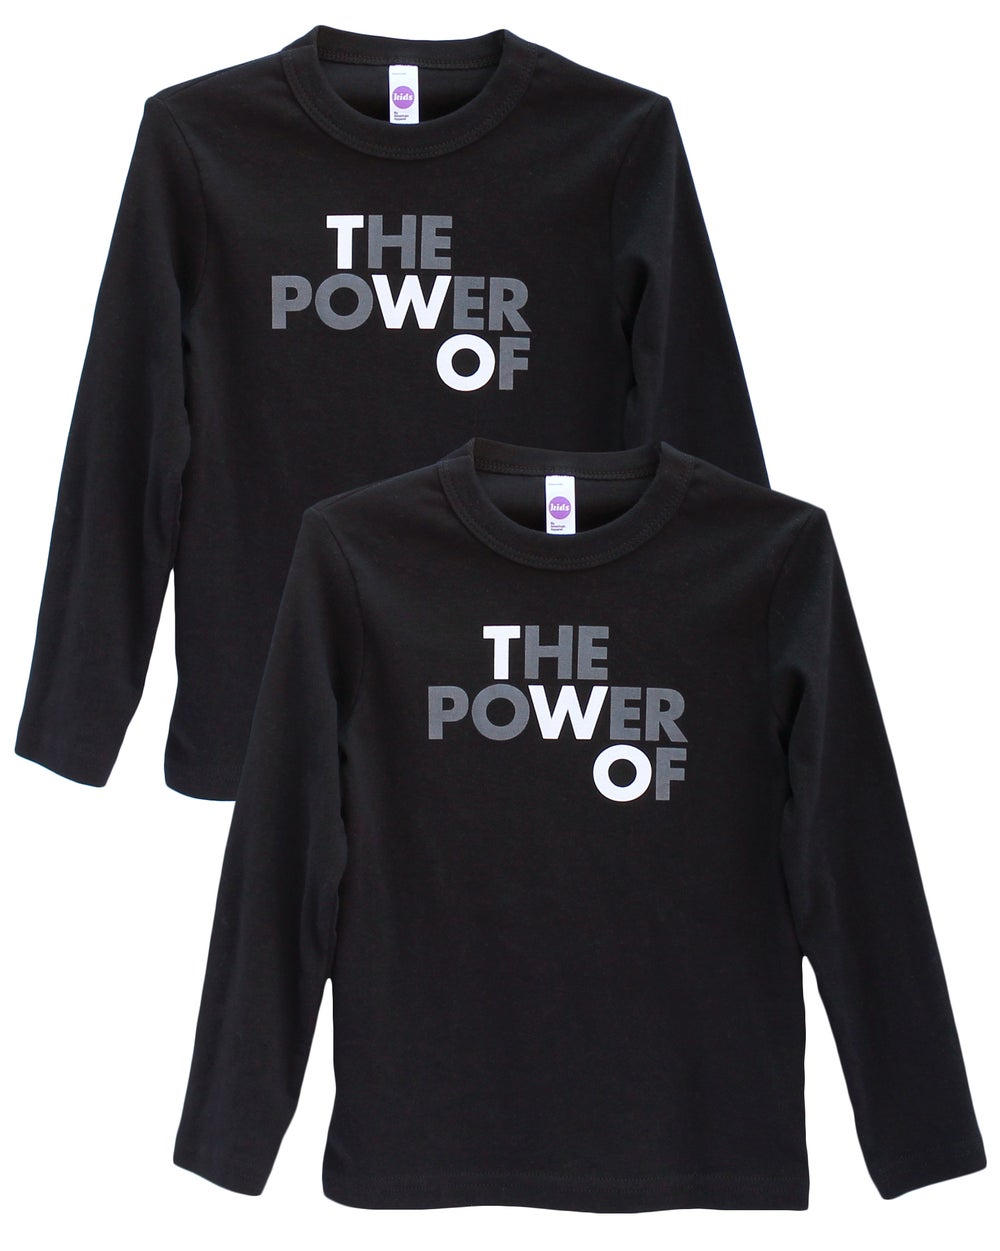 Image of THE POWER OF TWO – Long Sleeve Tees in Black